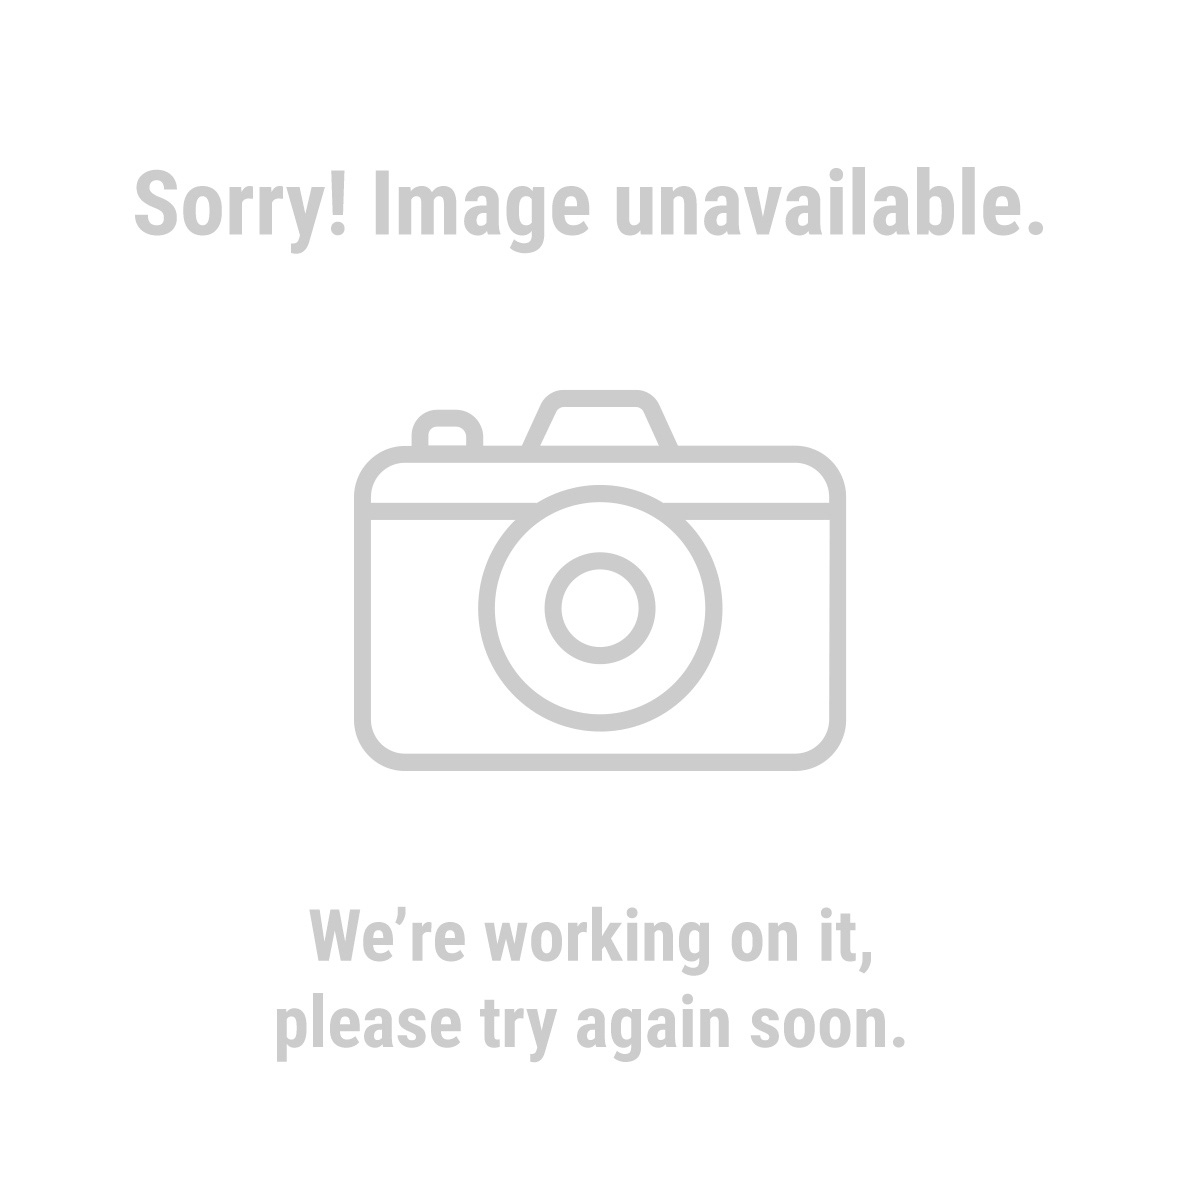 Pittsburgh Automotive 62789 5 Piece Front End Service Tool Set